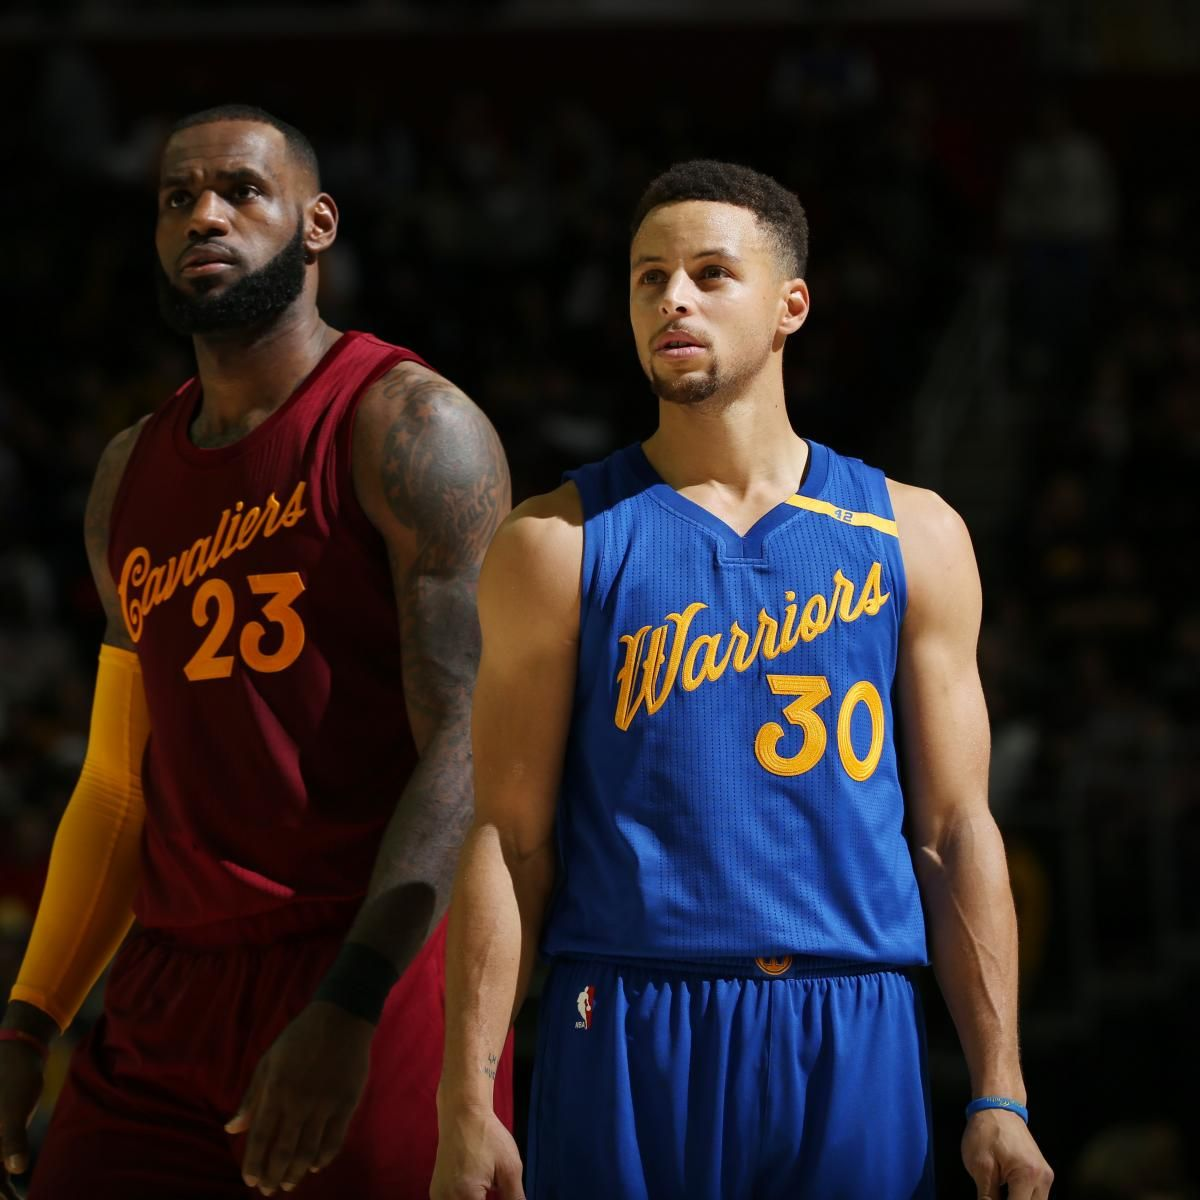 Cavaliers Vs Warriors 2017 Nba Finals Opening Odds Revealed Lebron James Stephen Curry Nba Uniforms